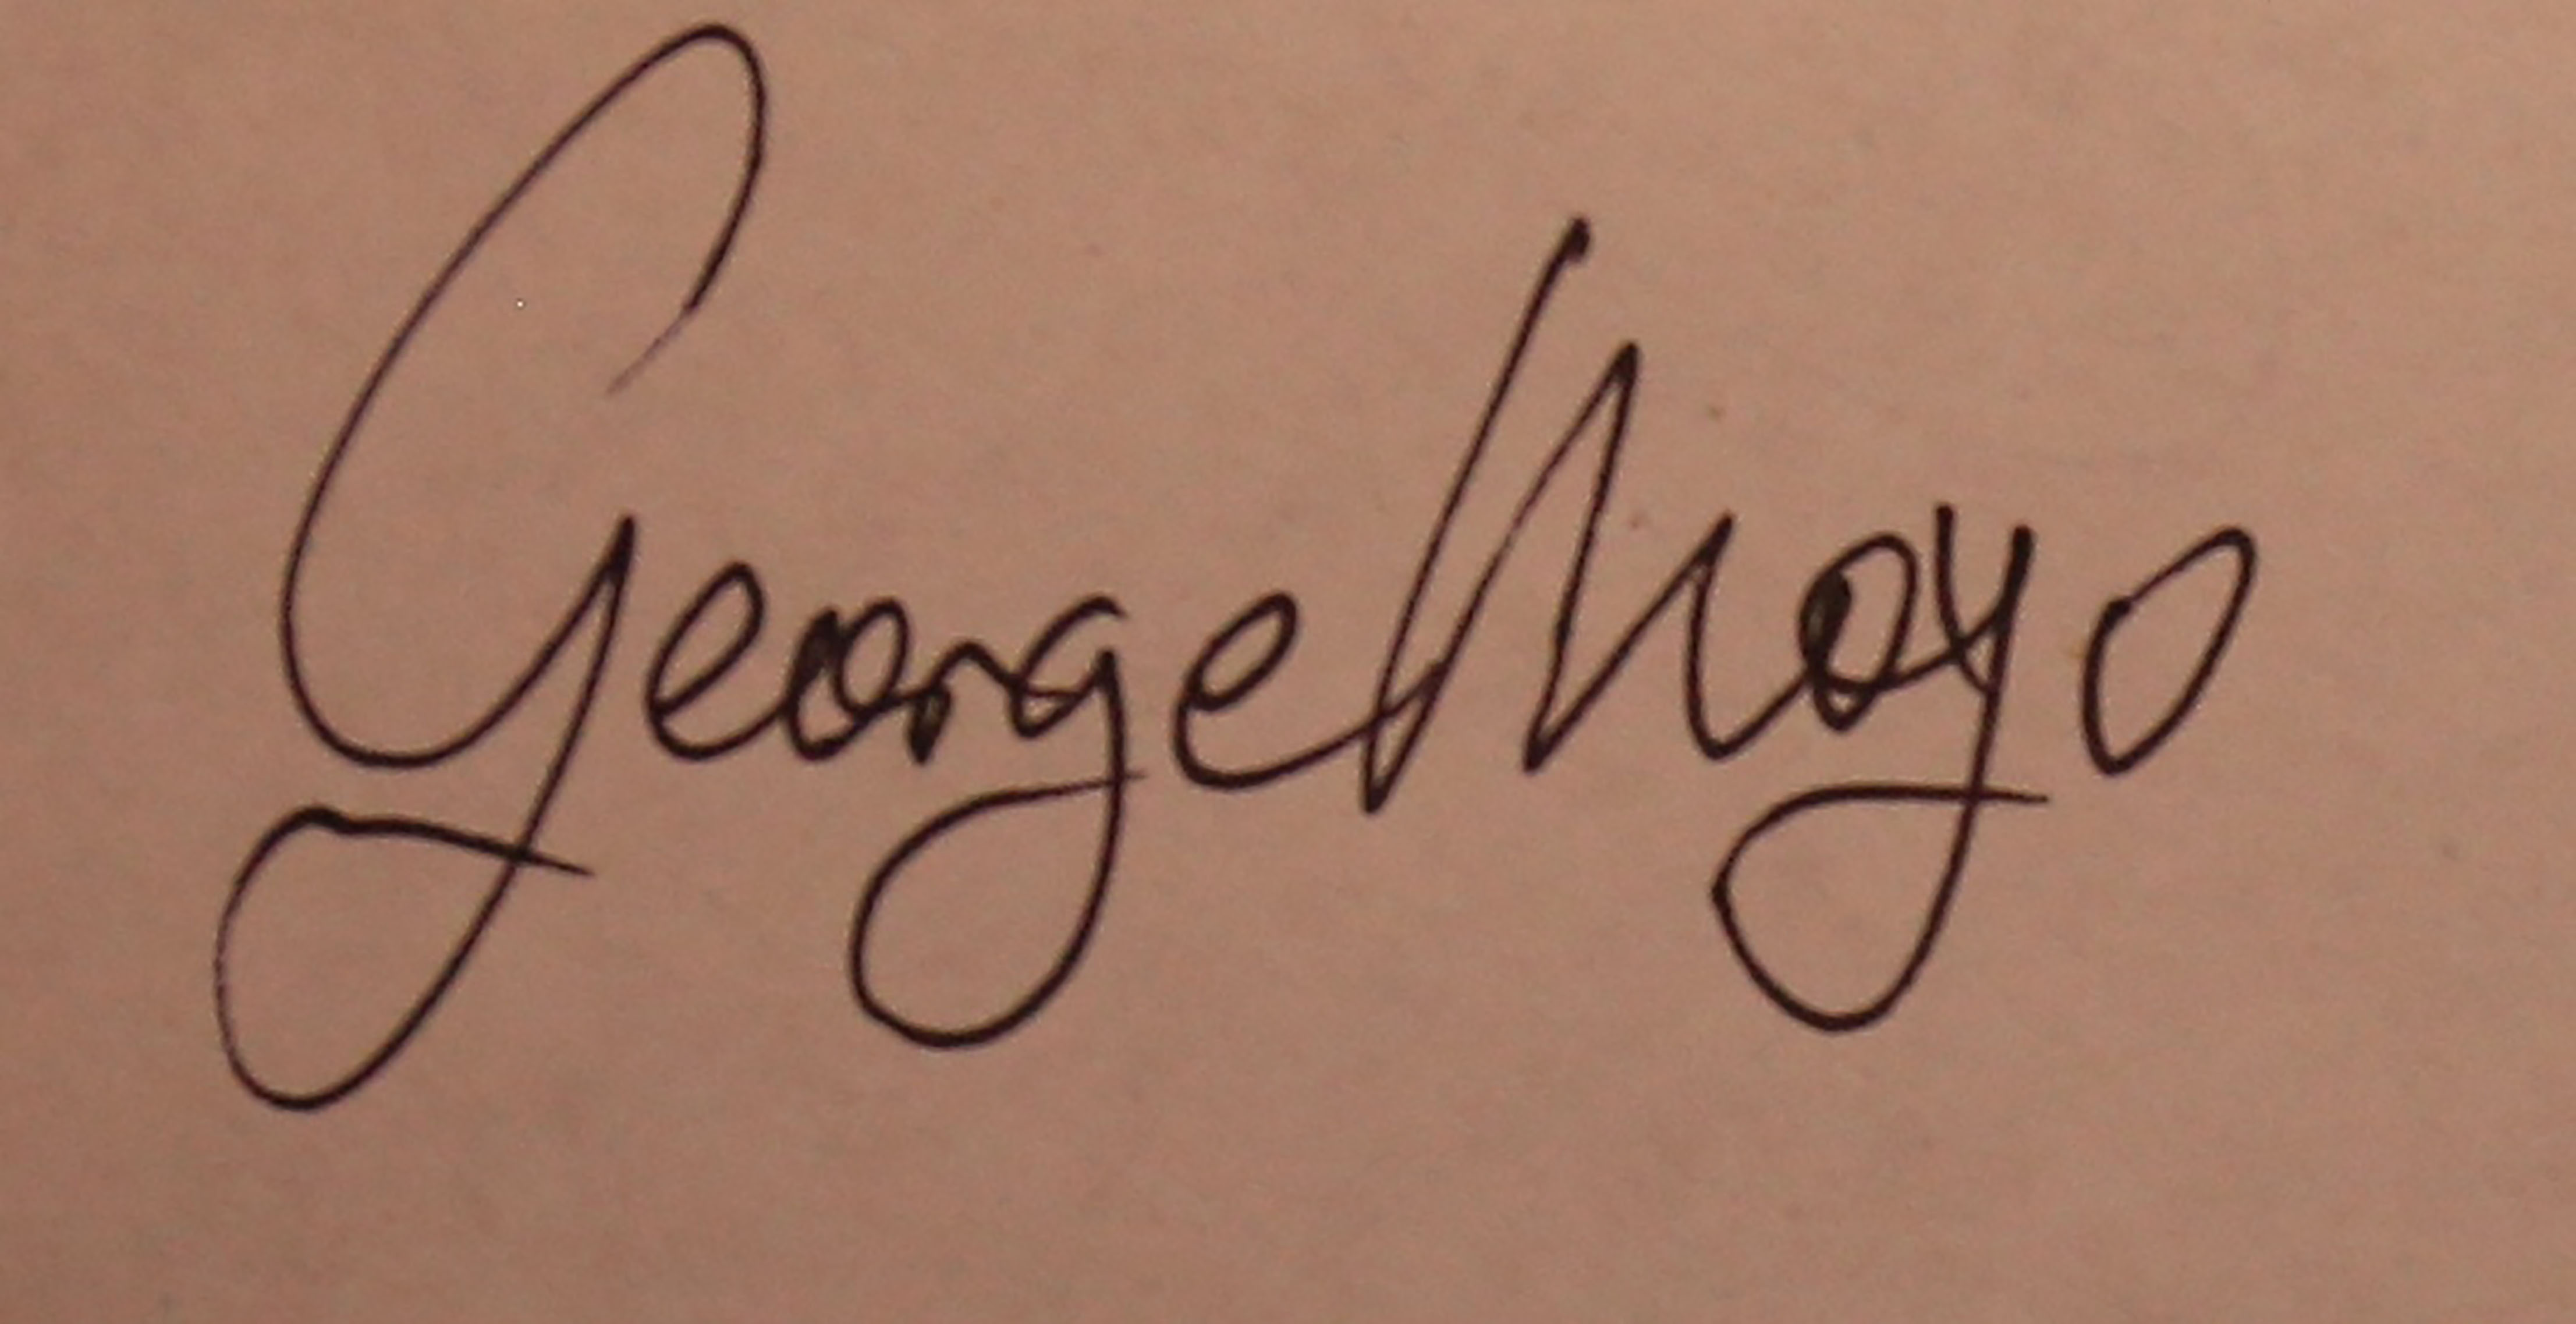 George Moyo Signature